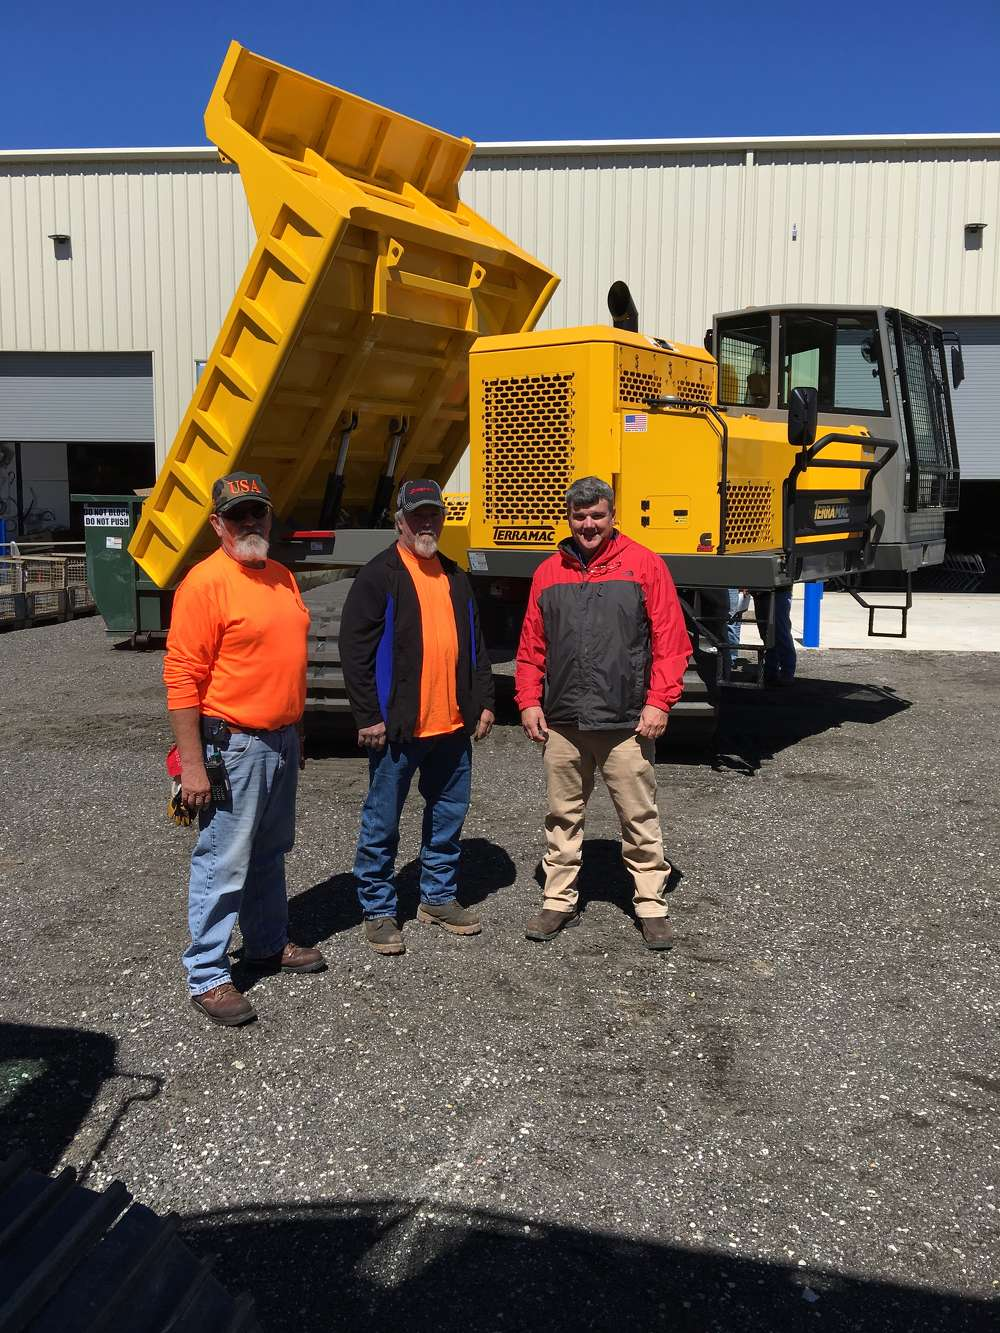 Charles Richardson (R) of Linder goes over the Terramac RT14R, a 14-ton (12.7 t) rotating bed crawler carrier with Barry McKenzie (L) of Kapstone Paper, Charleston, S.C., and Ricky Huneycutt of H&J Contracting in Charleston.